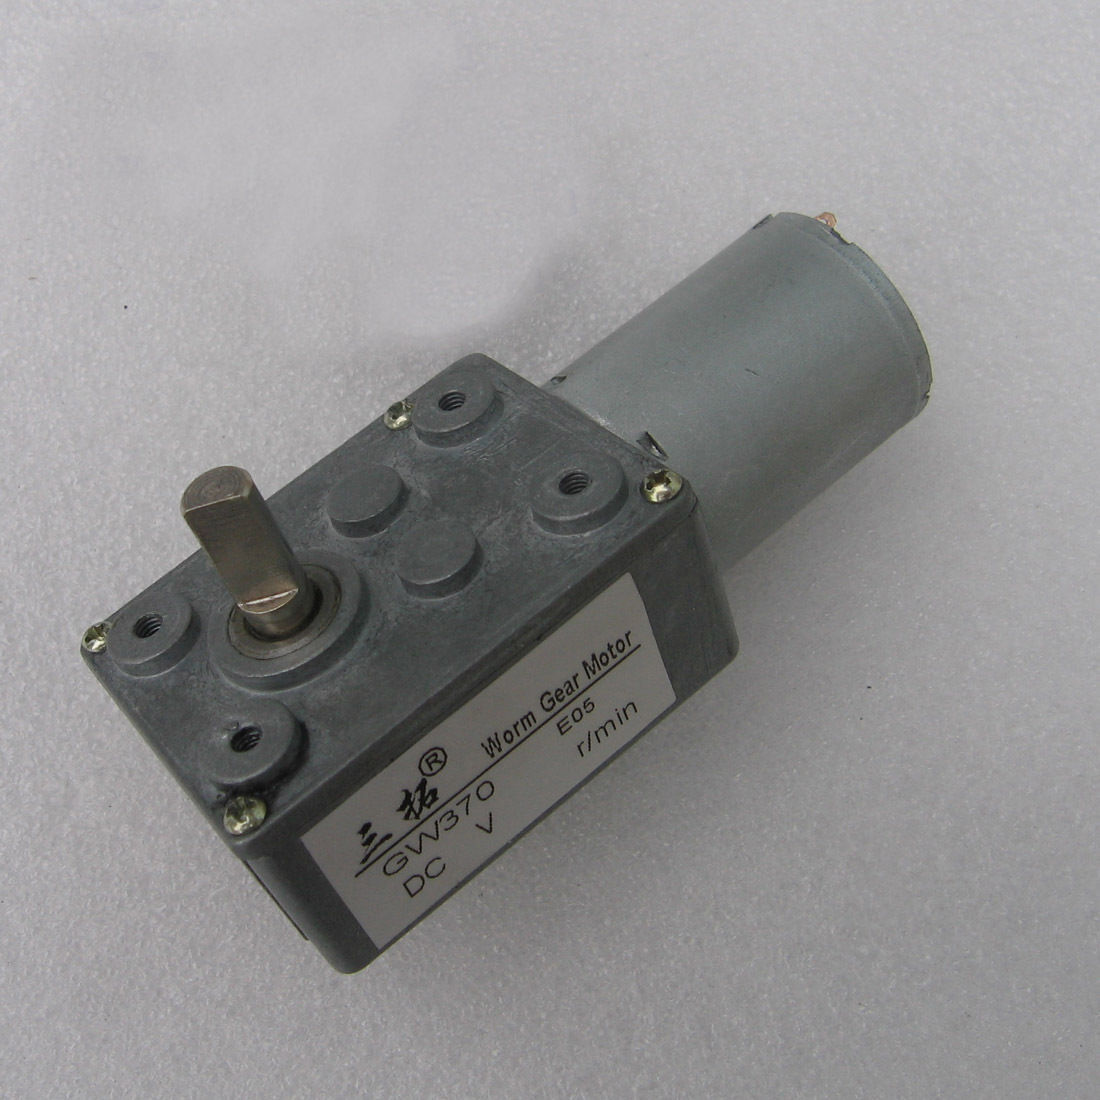 1PC High torque Turbo worm Geared motor DC motor GW370 Robot model Low speed 0.6RPM 180RPM